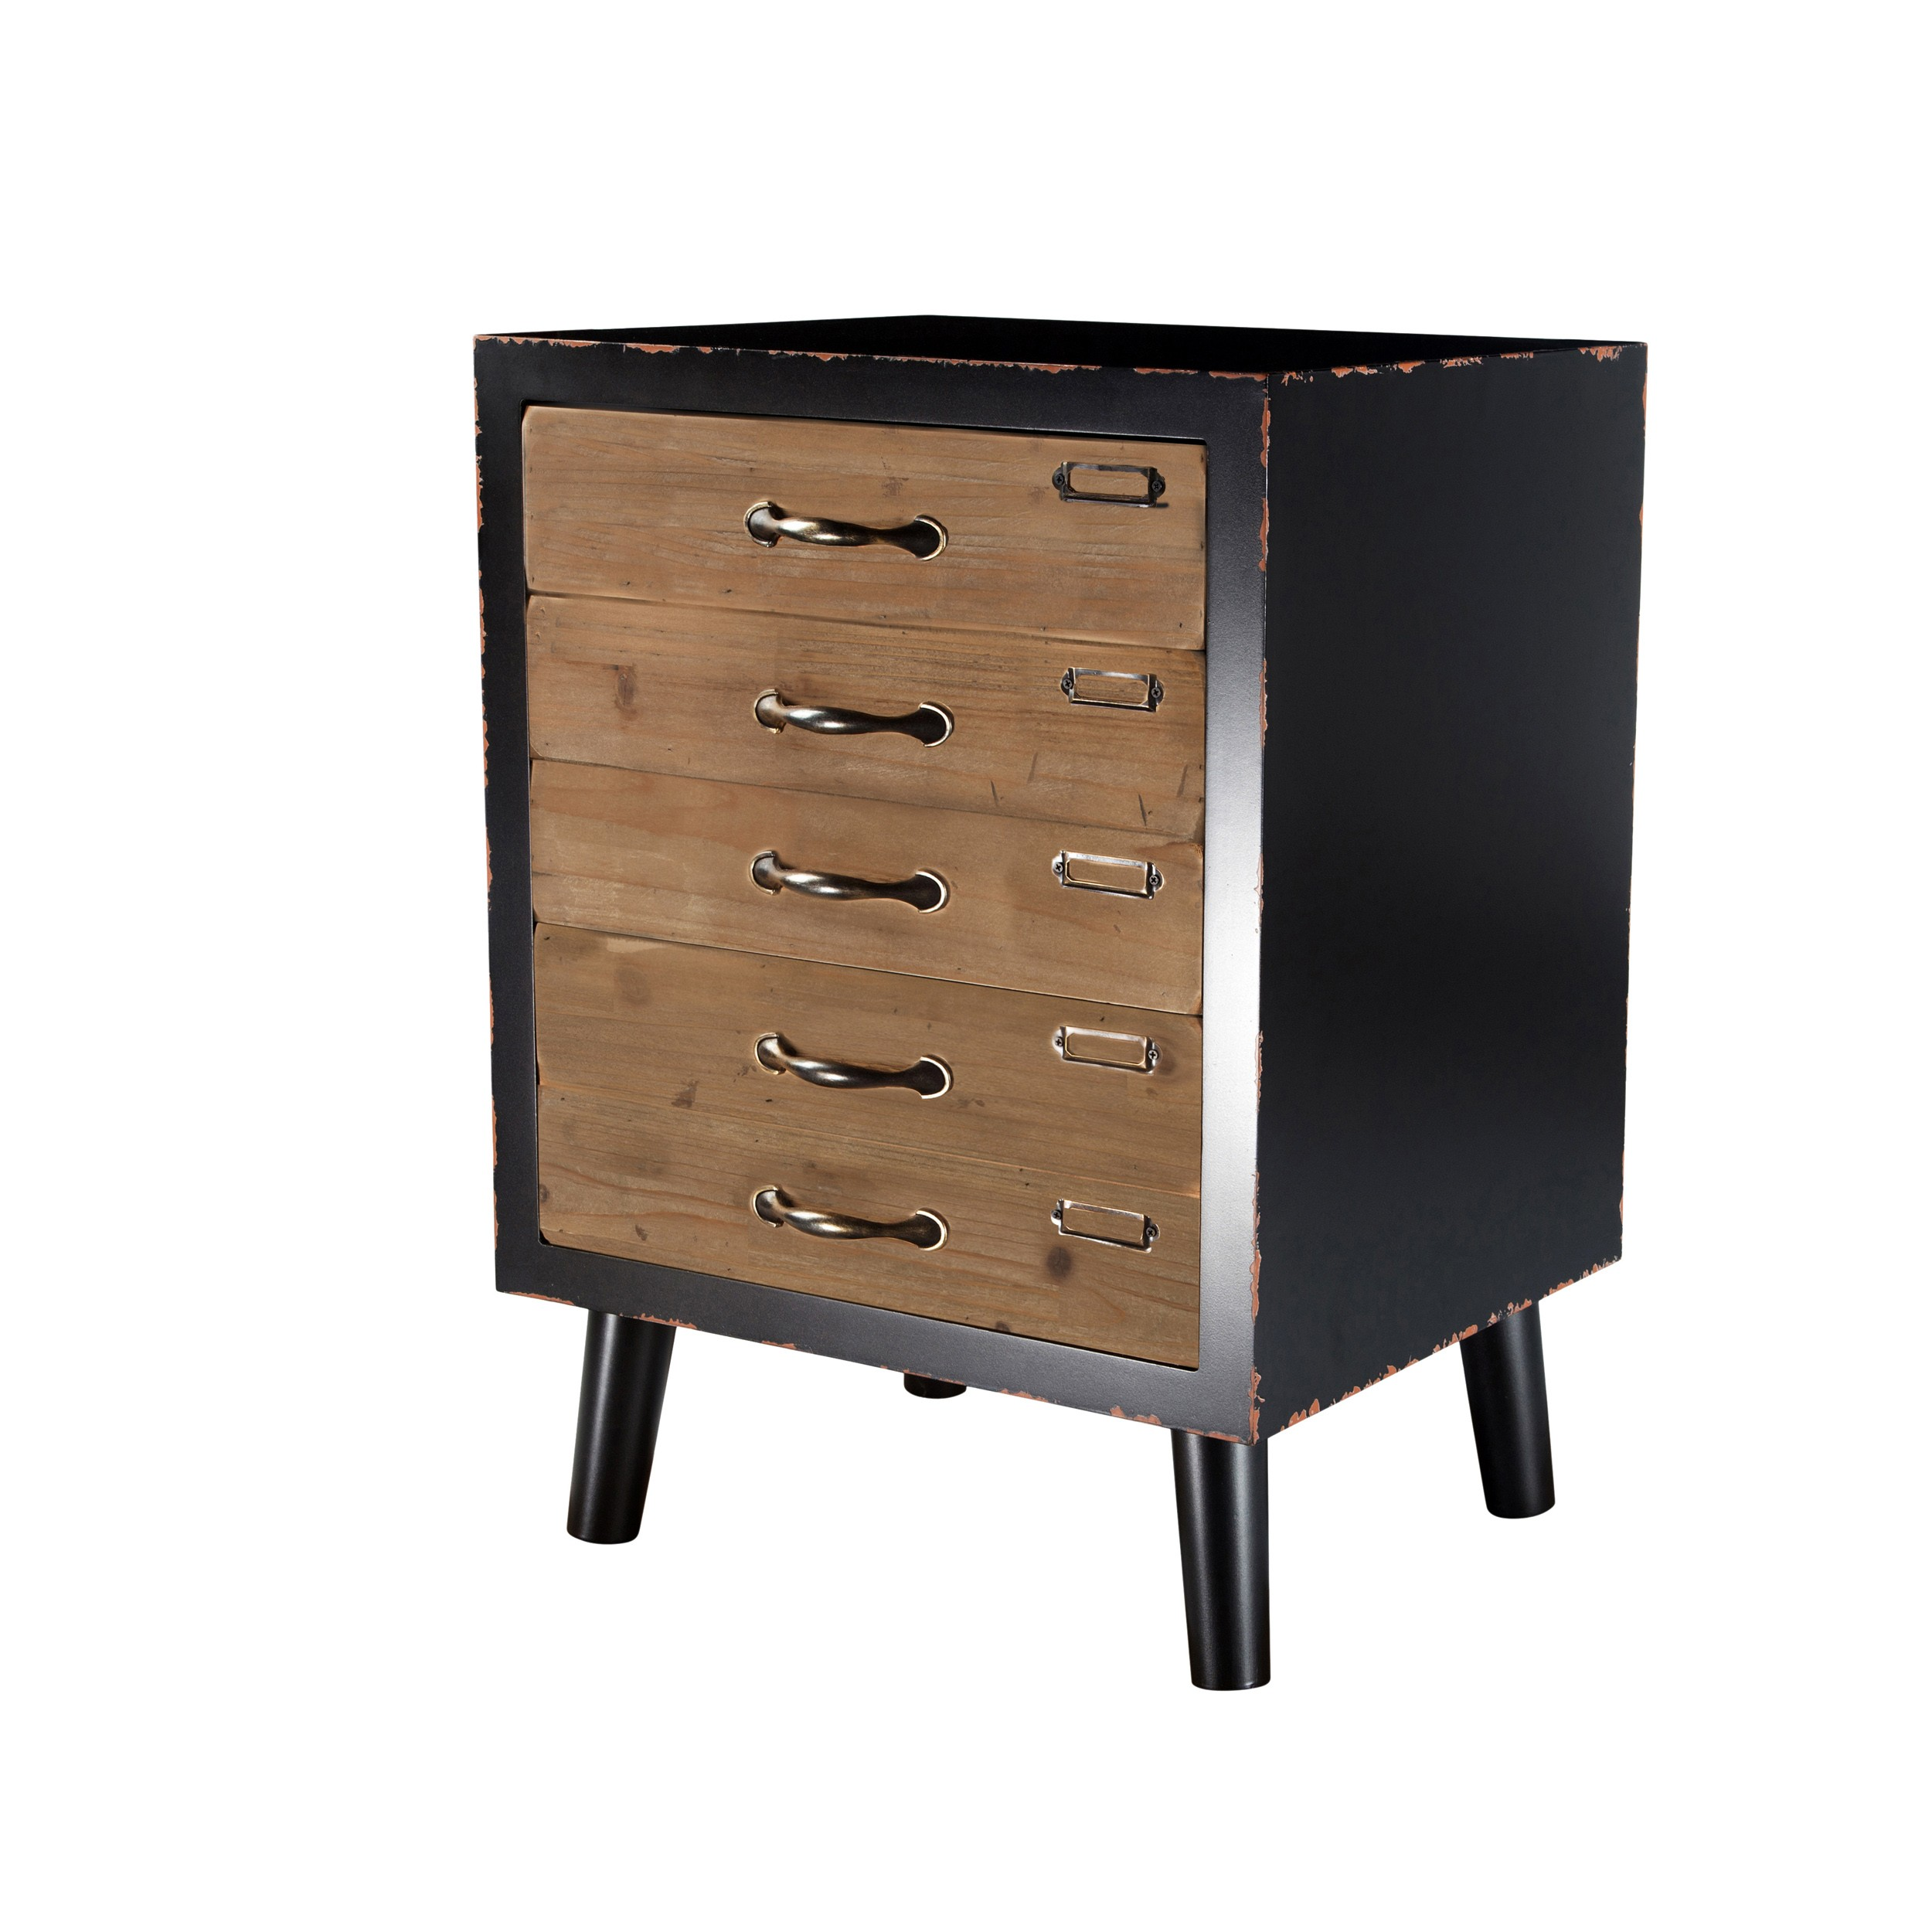 chevet lohja 3 tiroirs commandez nos chevets lohja 3 tiroirs rdv d co. Black Bedroom Furniture Sets. Home Design Ideas